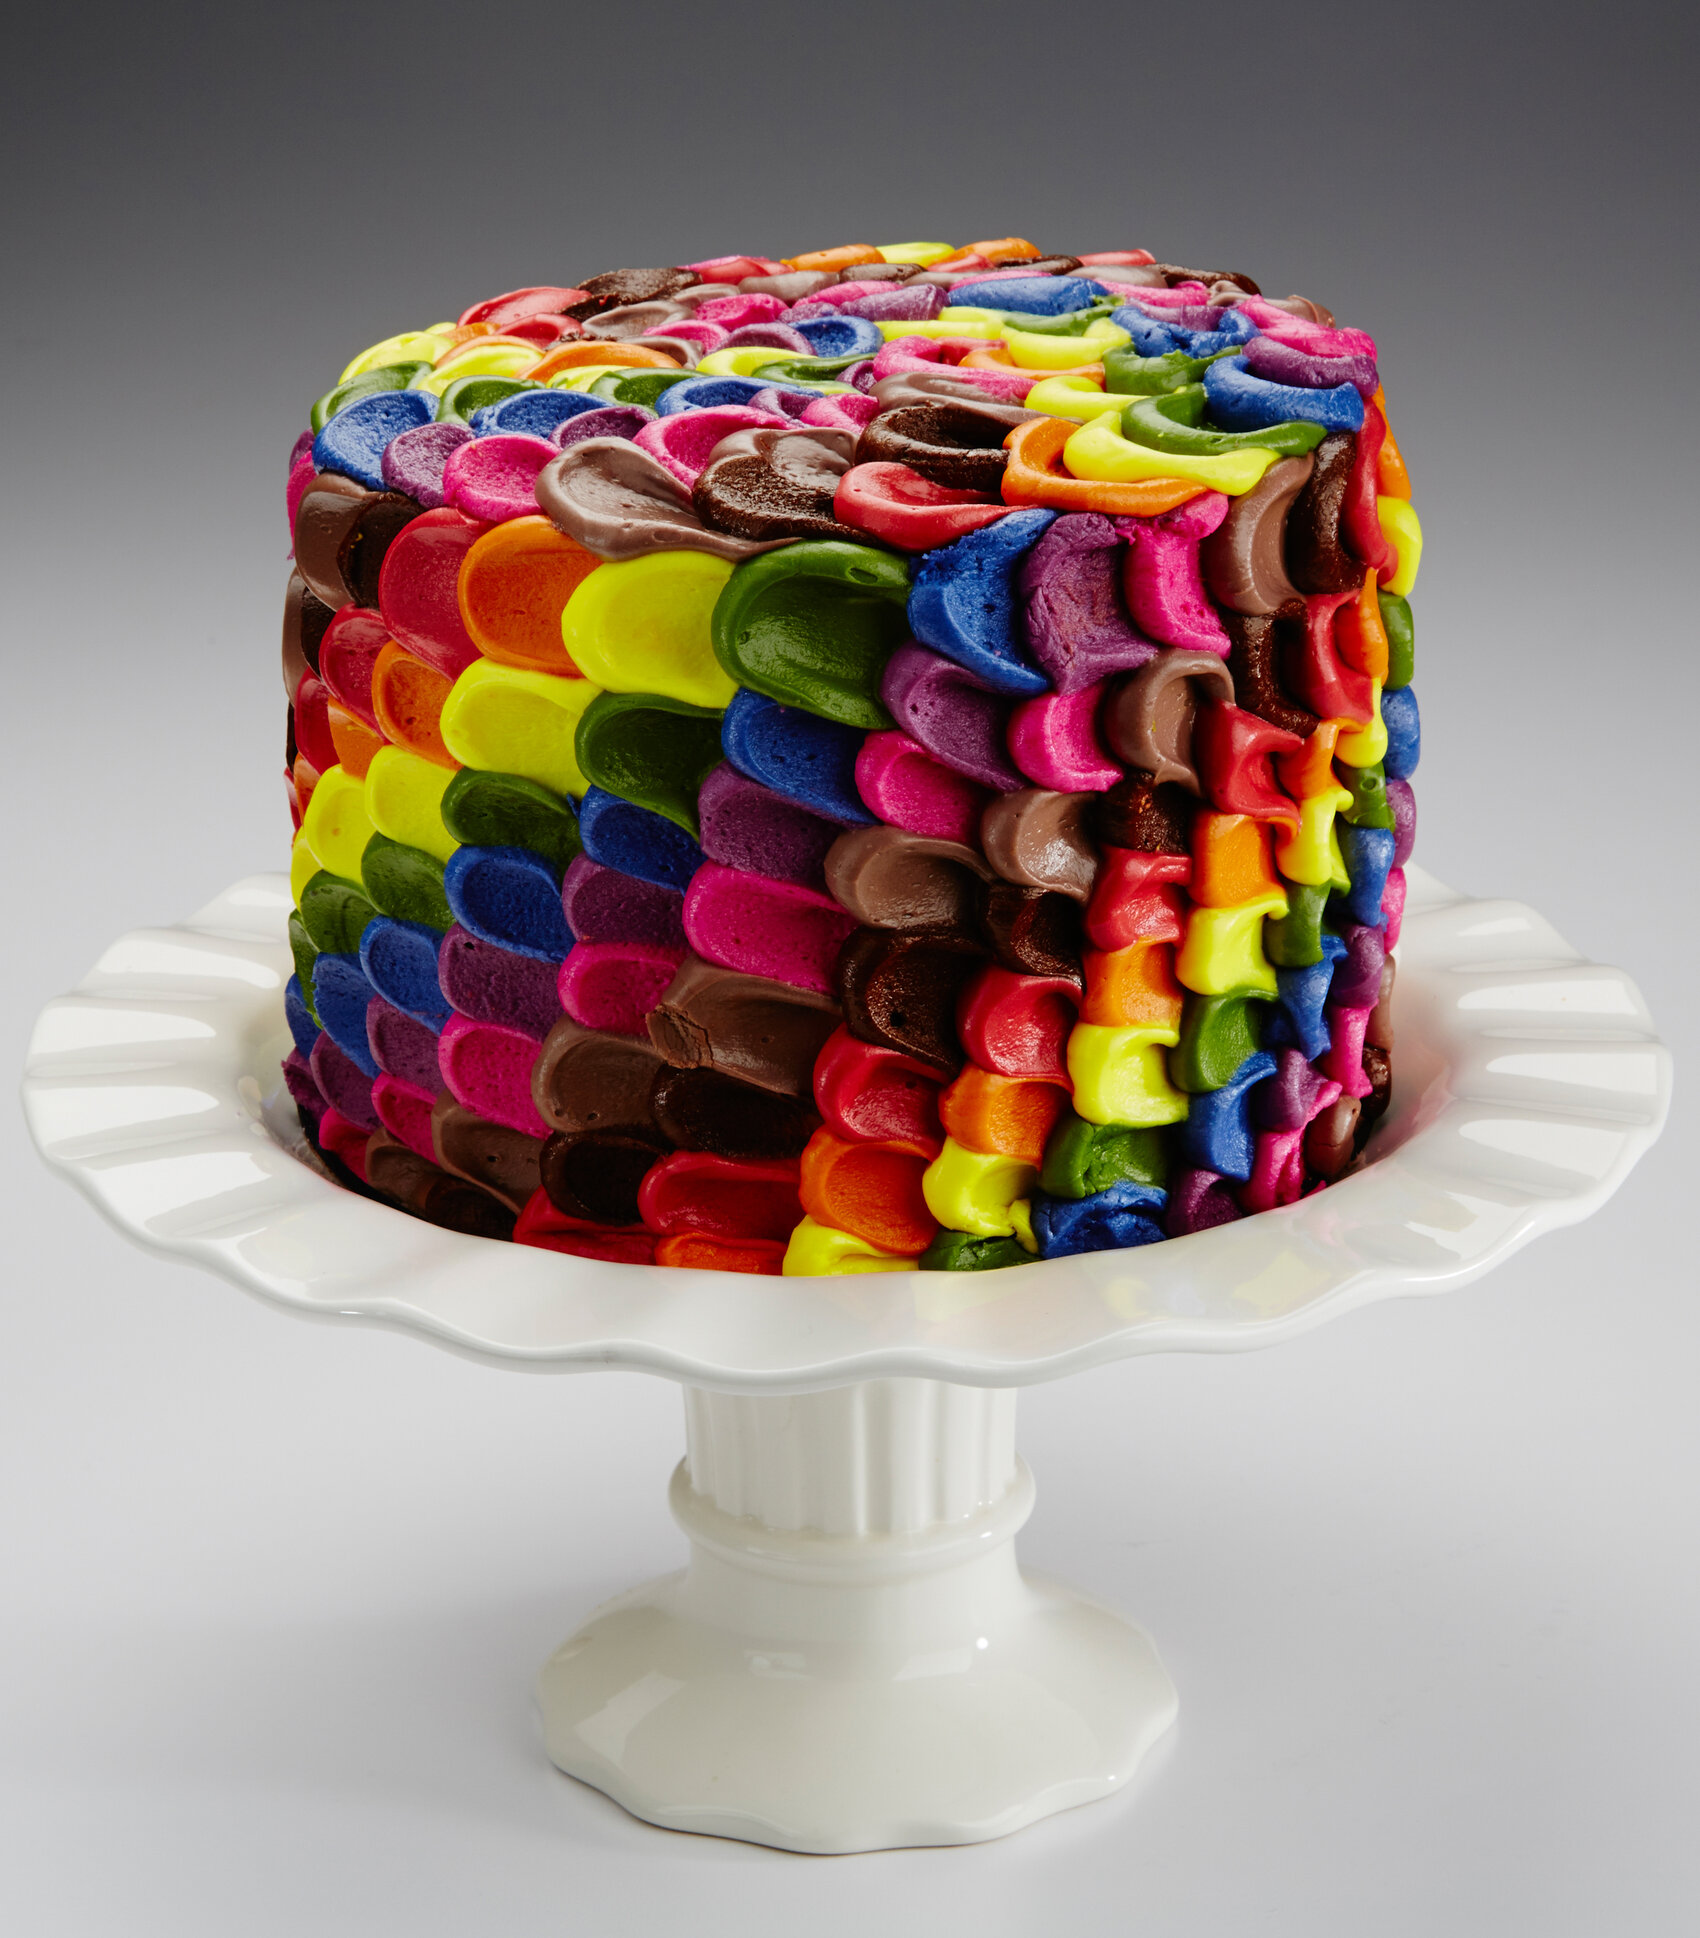 This multi-colored cake's icing is made from red cabbage juice, turmeric, annatto, beet juice, and caramel color. (Courtesy of colorMaker Inc.)